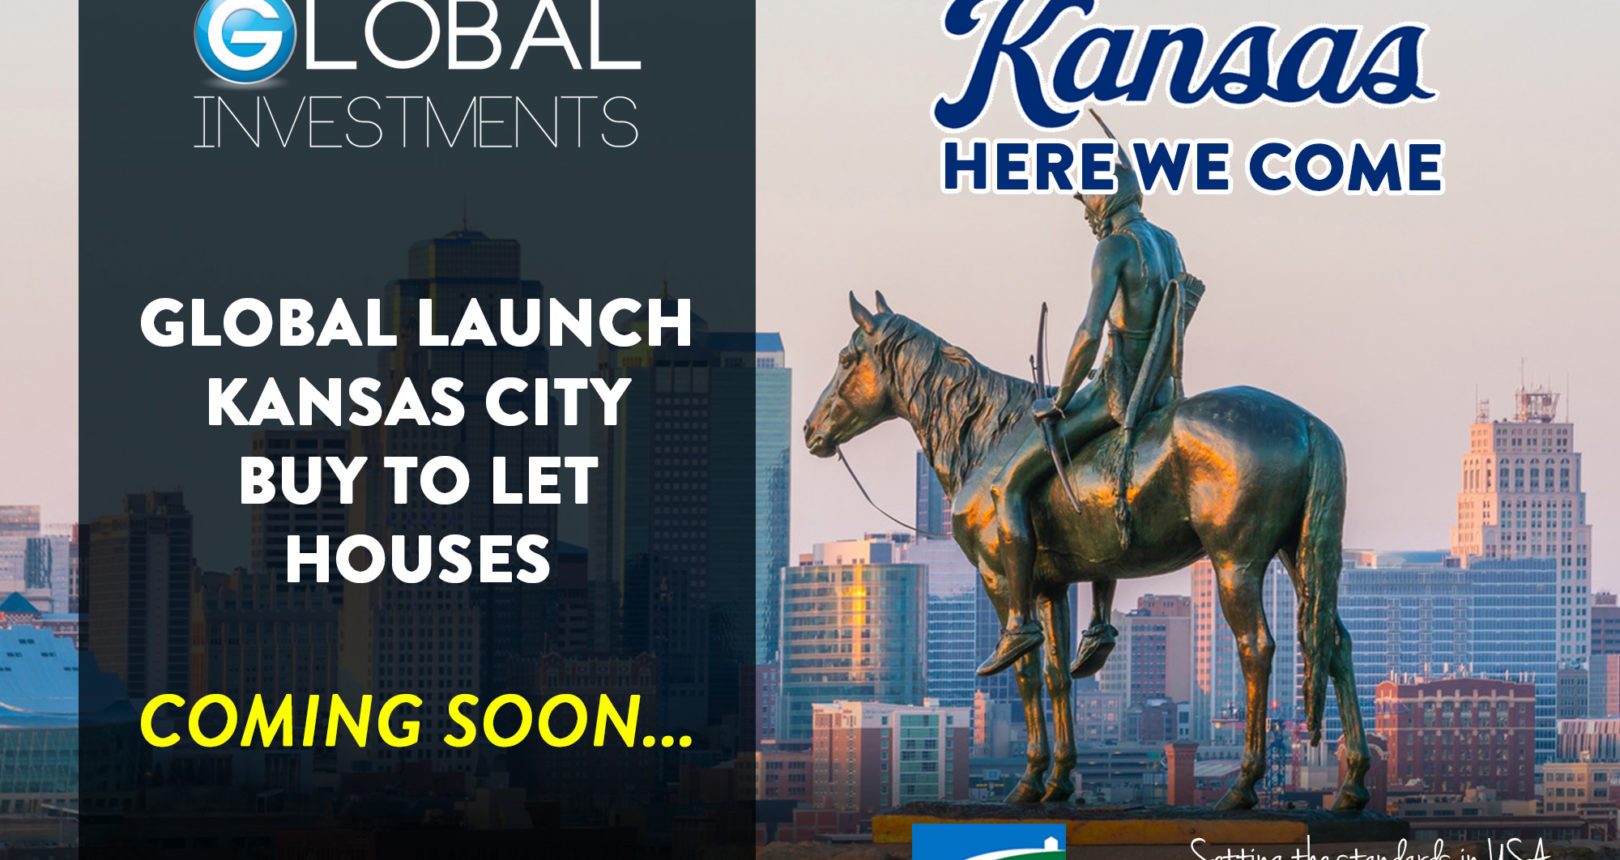 GLOBAL ARE COMING TO KANSAS